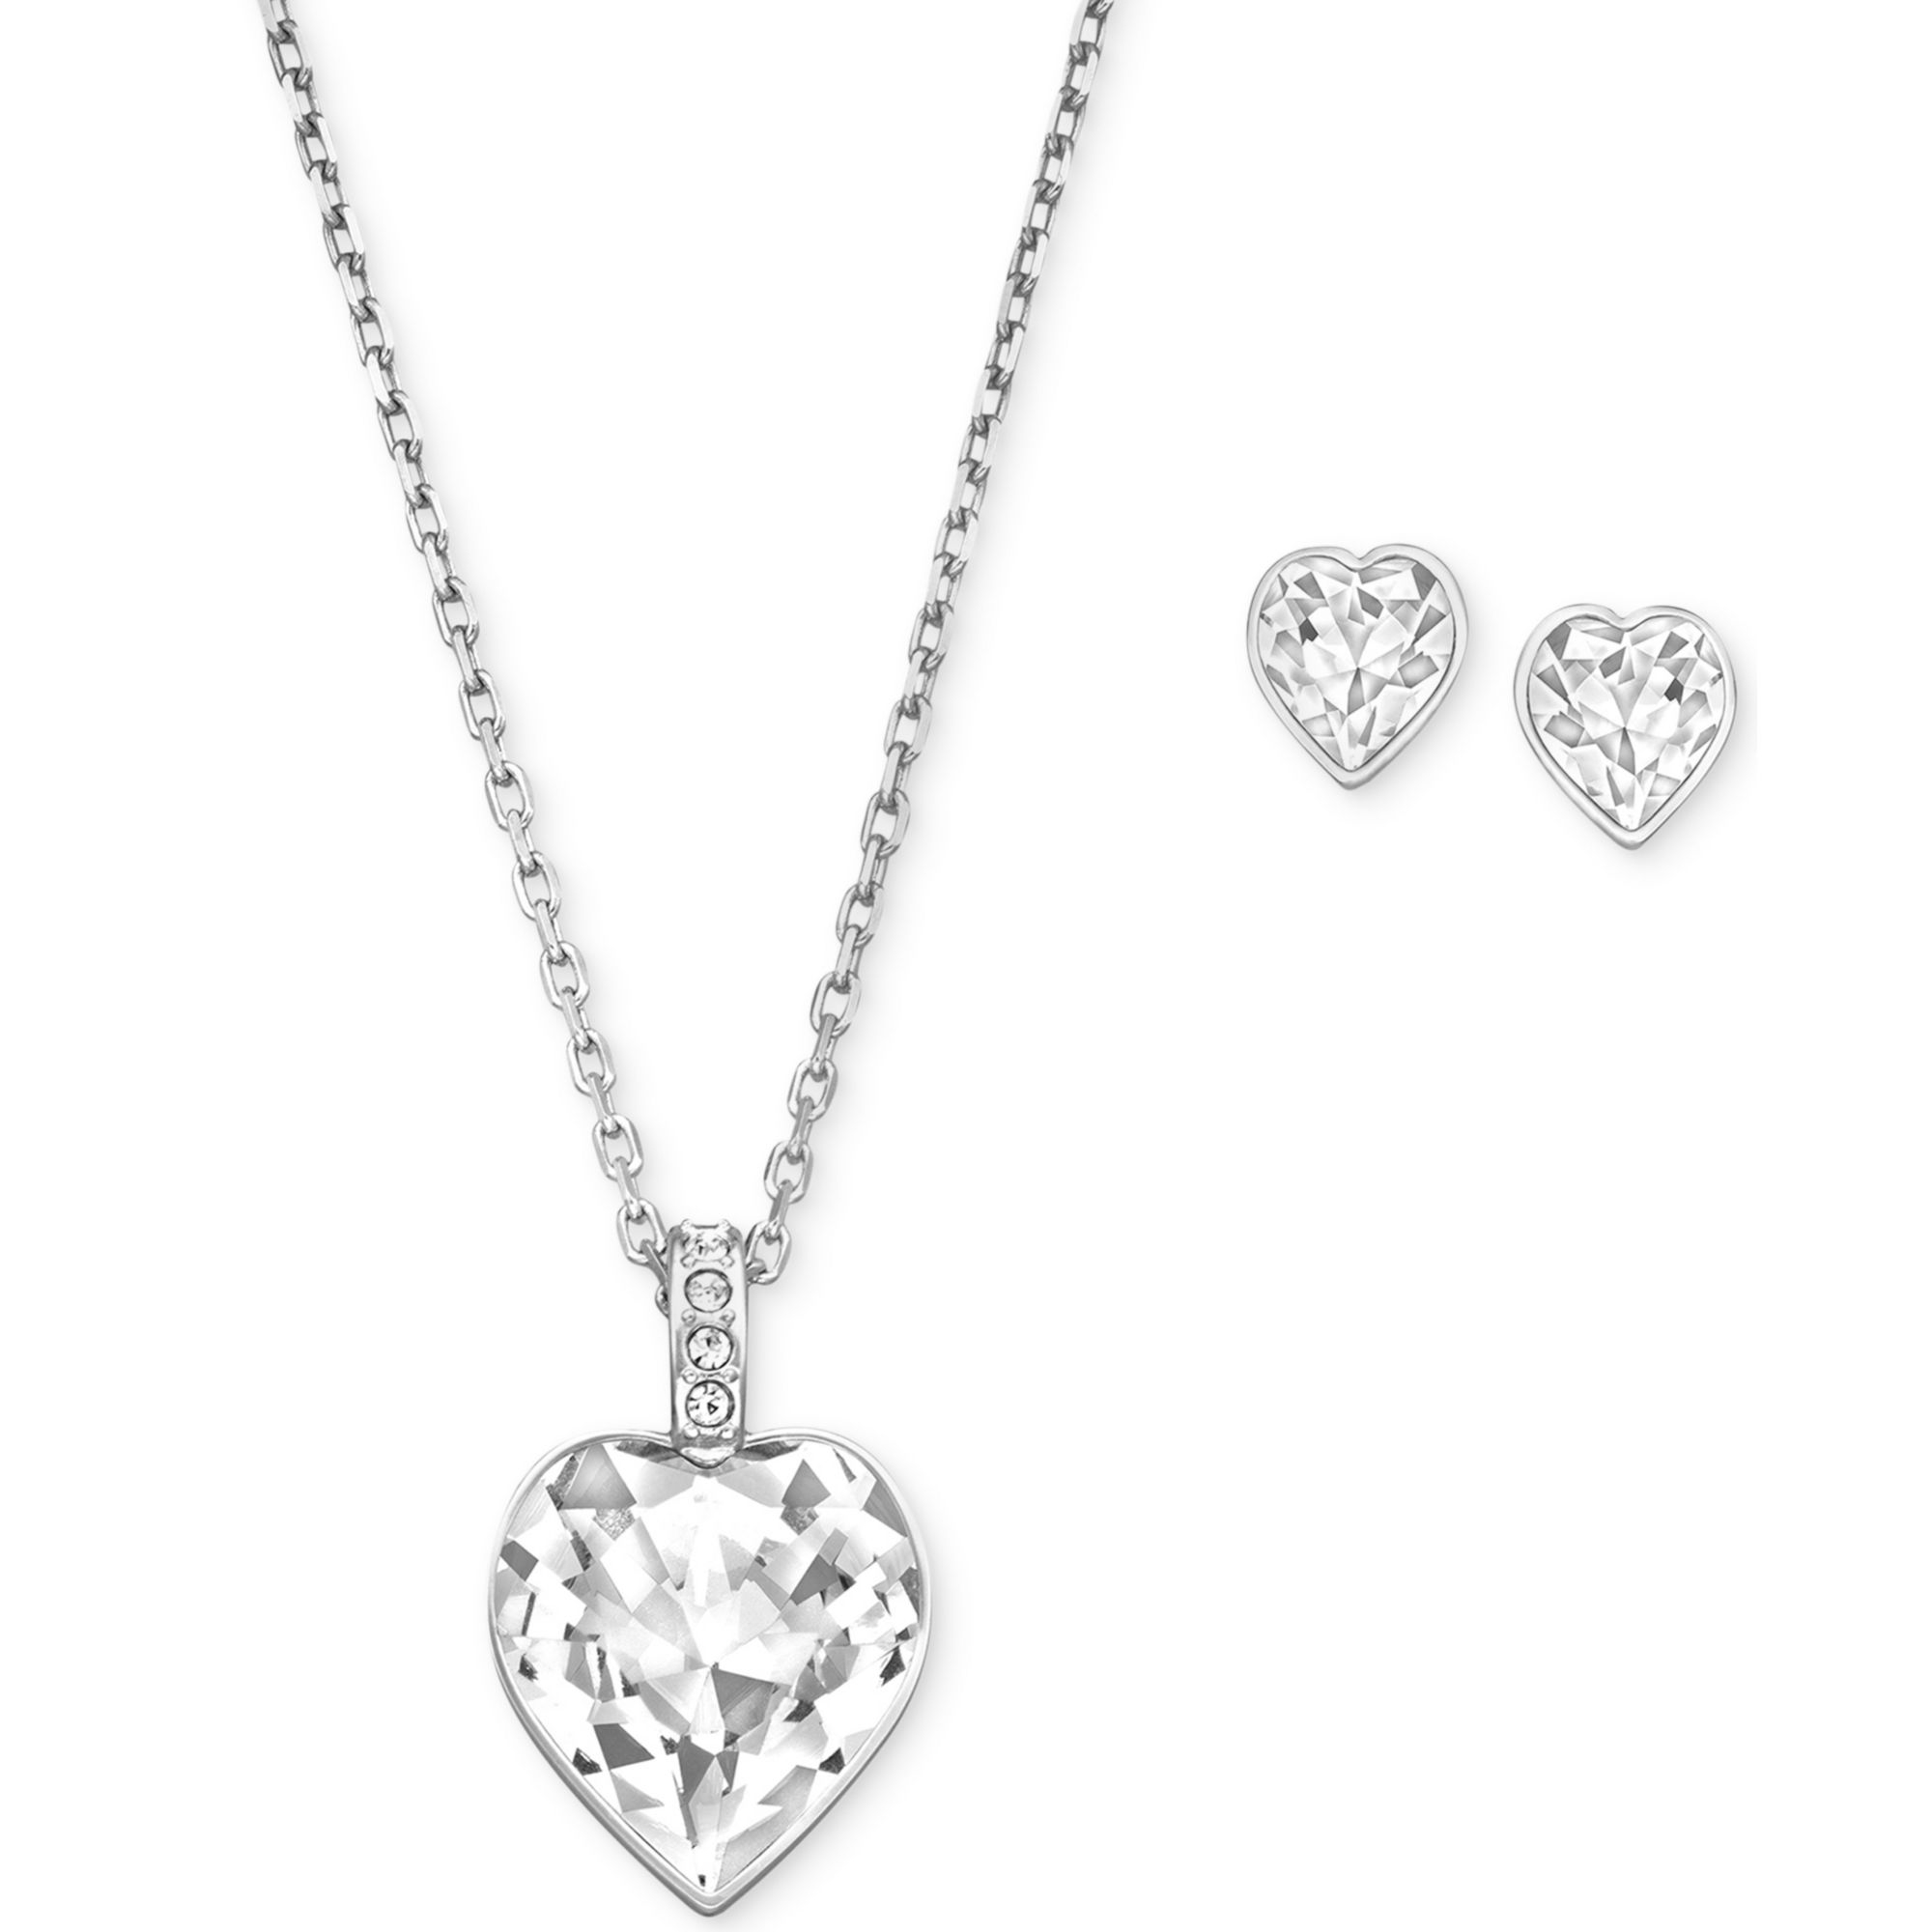 lg elisa crystal boutique products bliss necklace pendant in clear gld